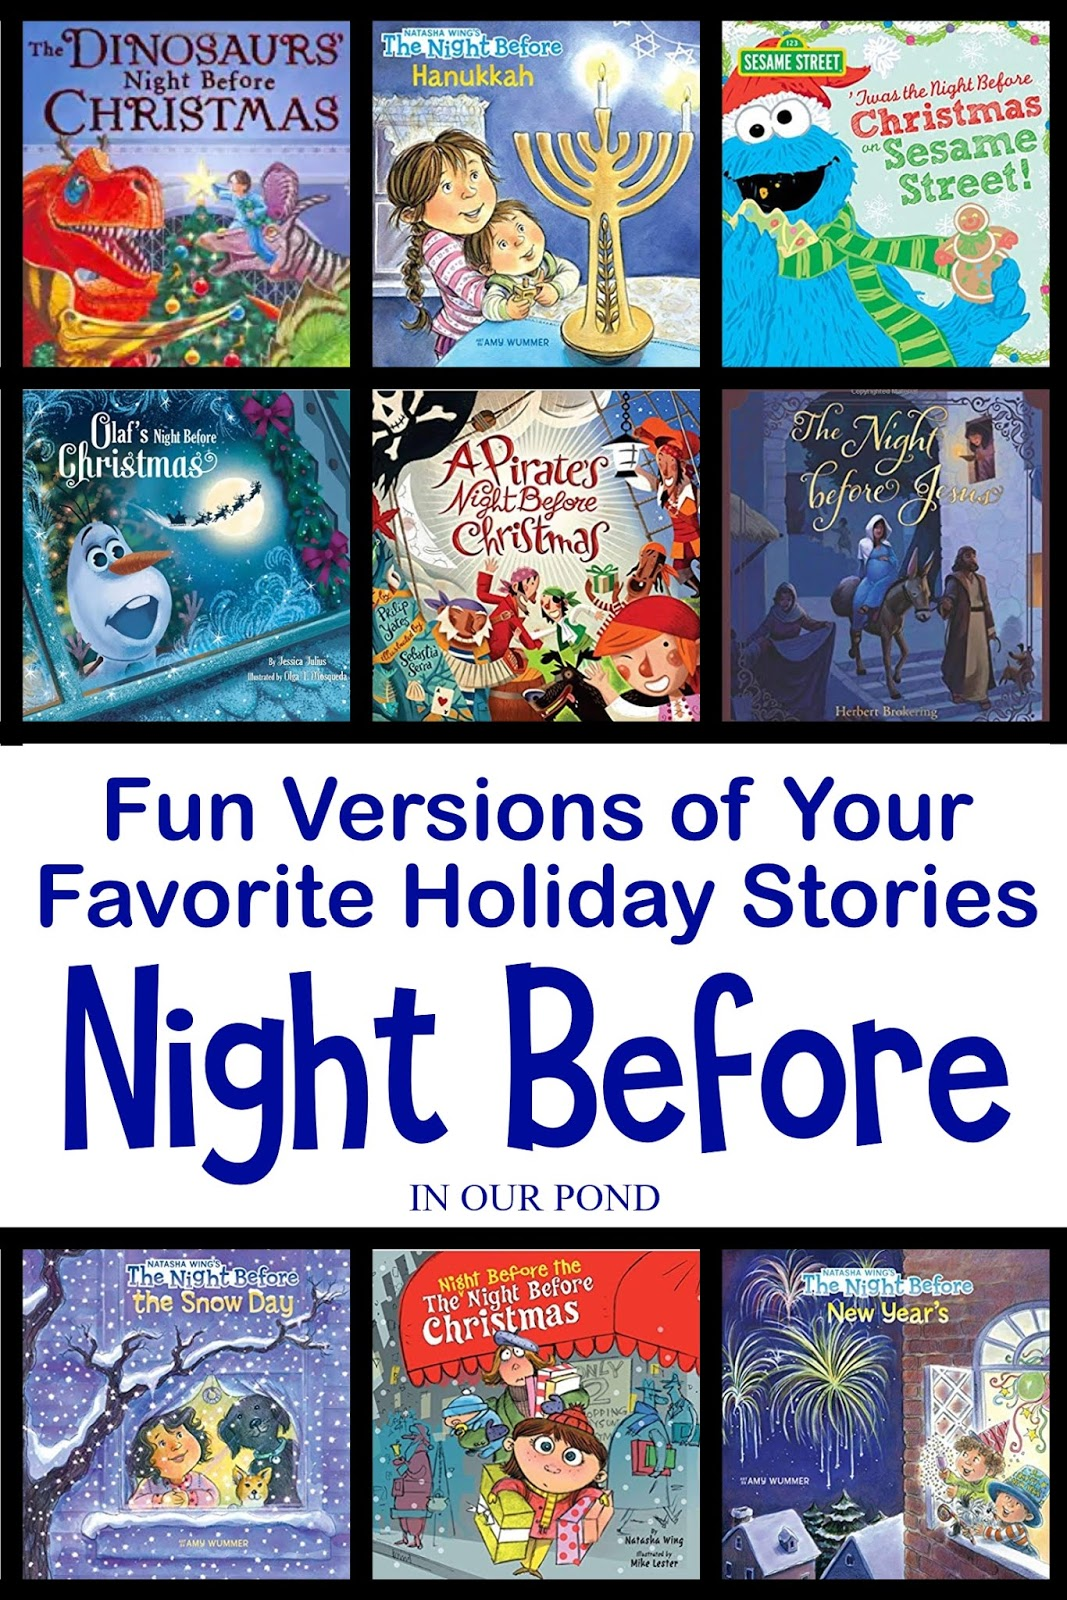 Fun Versions of Your Favorite Holiday Stories - In Our Pond